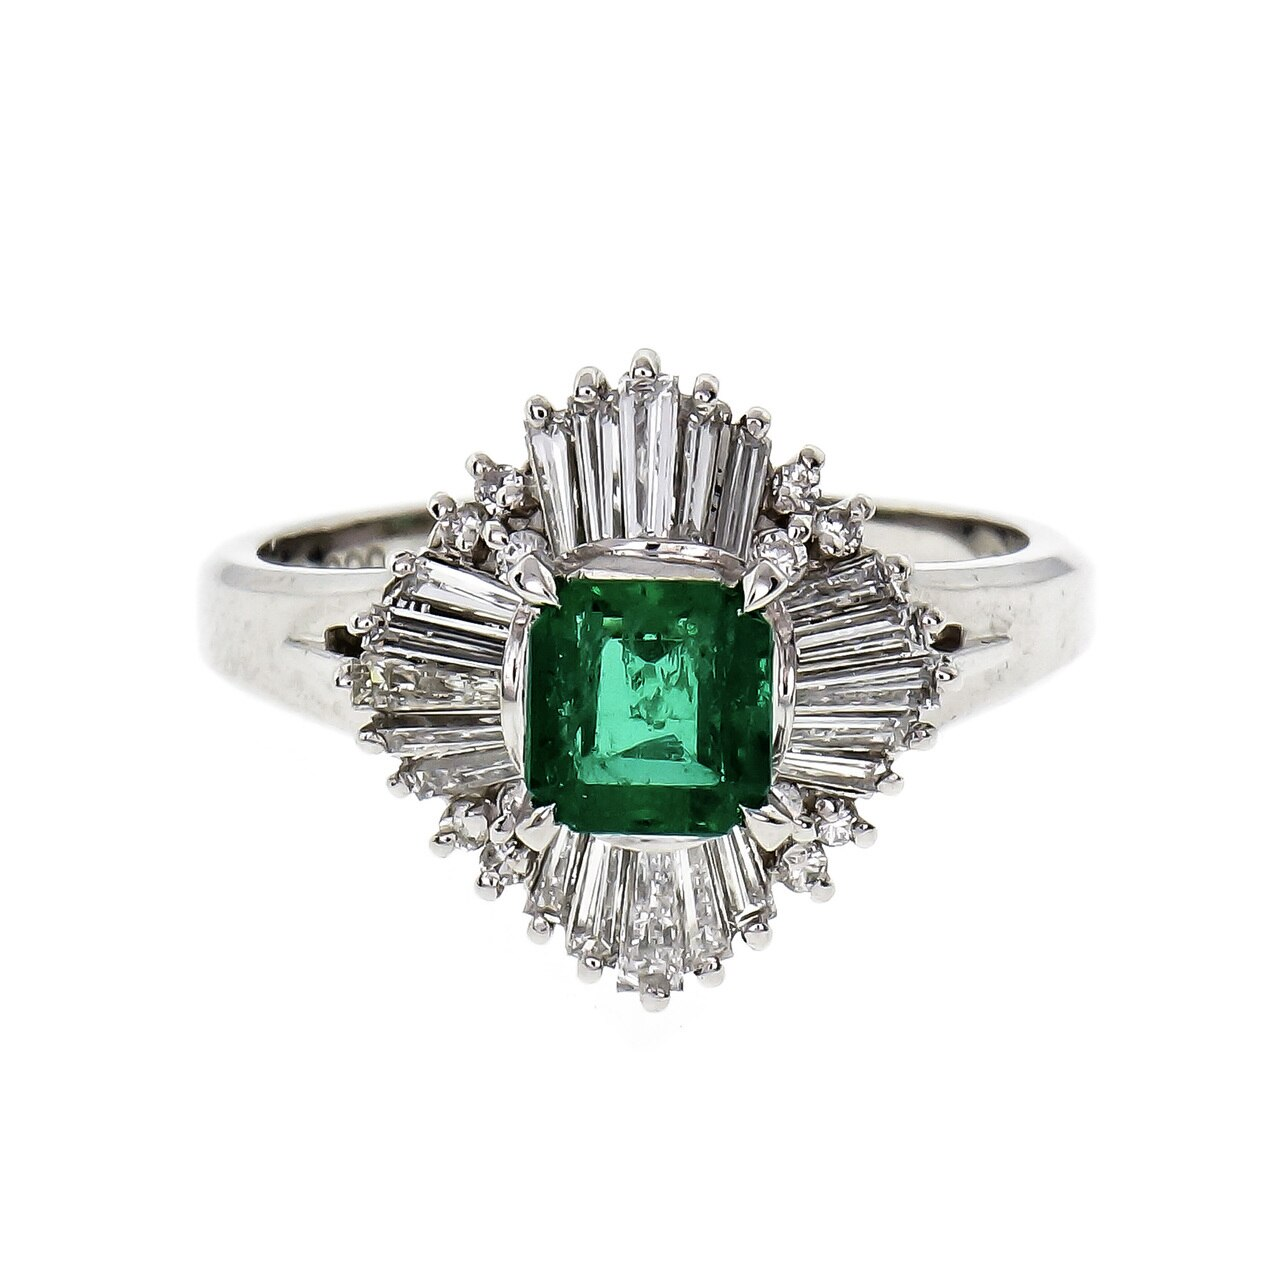 Why did Cleopatra Love Emerald Jewelry